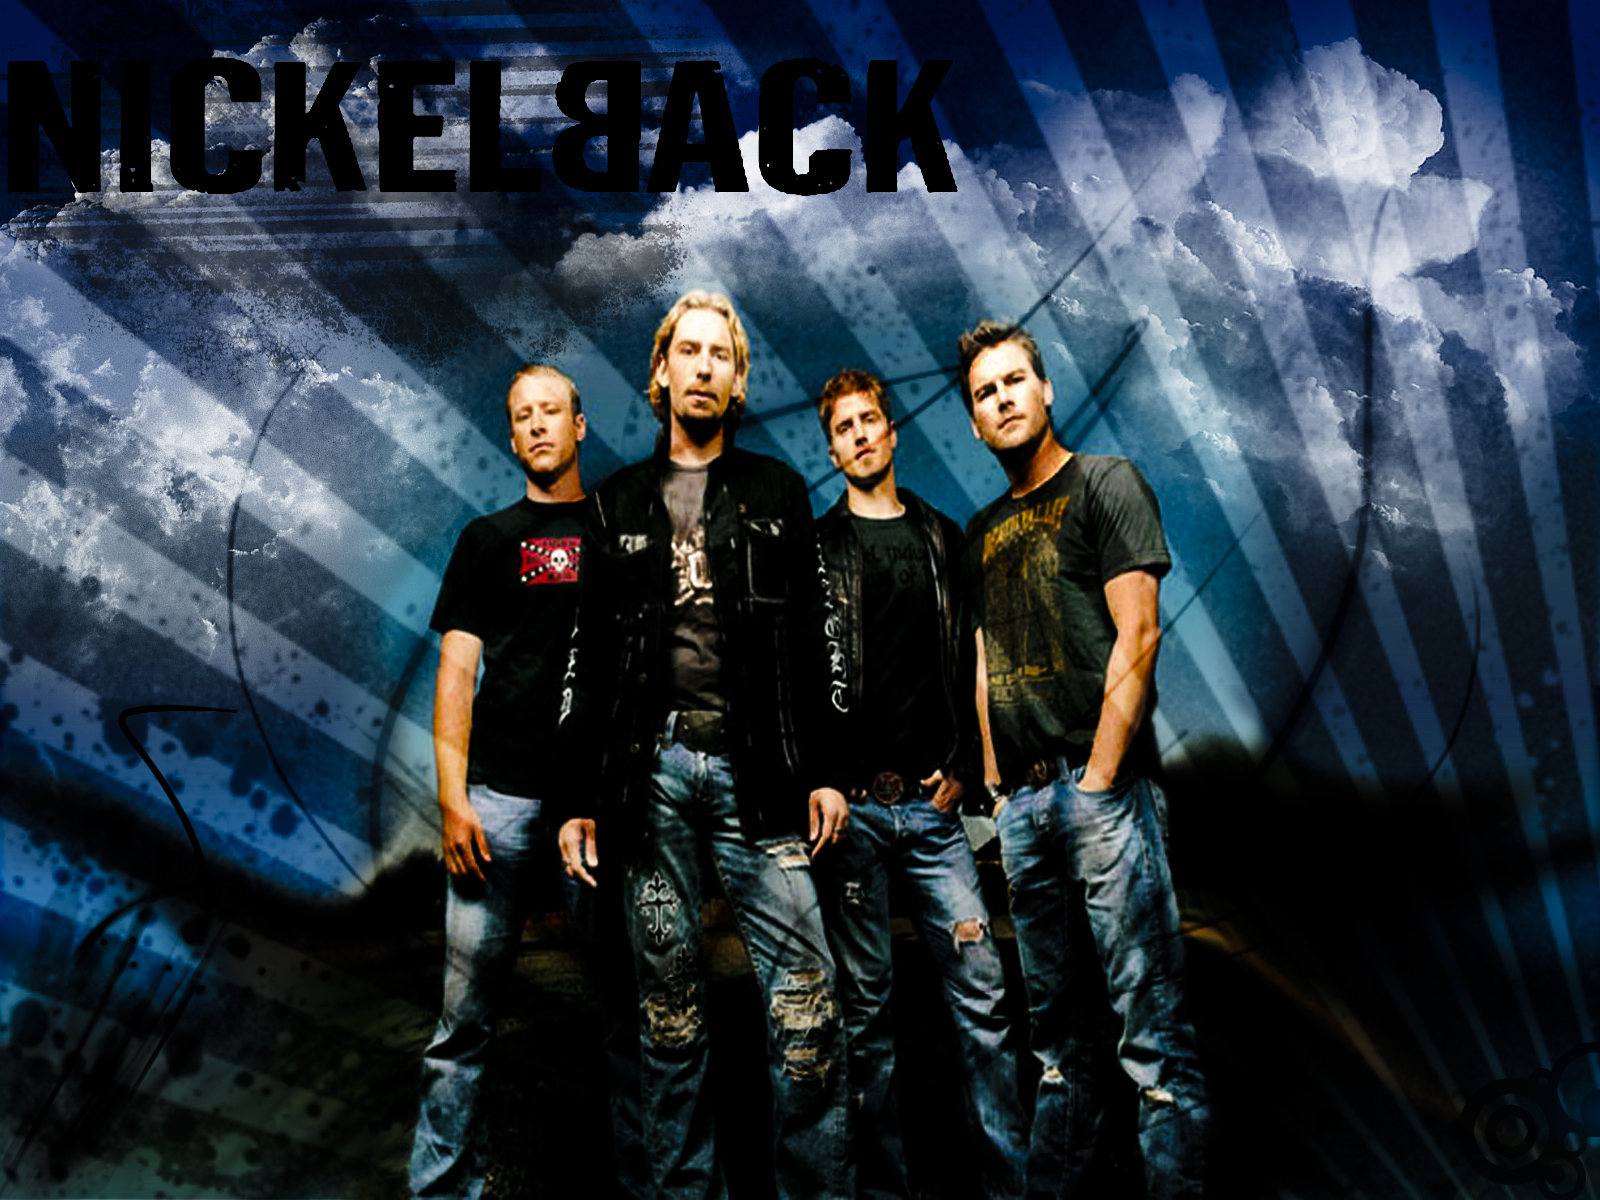 Hd Wallpapers Hd Backgrounds: Nickelback HD Wallpapers